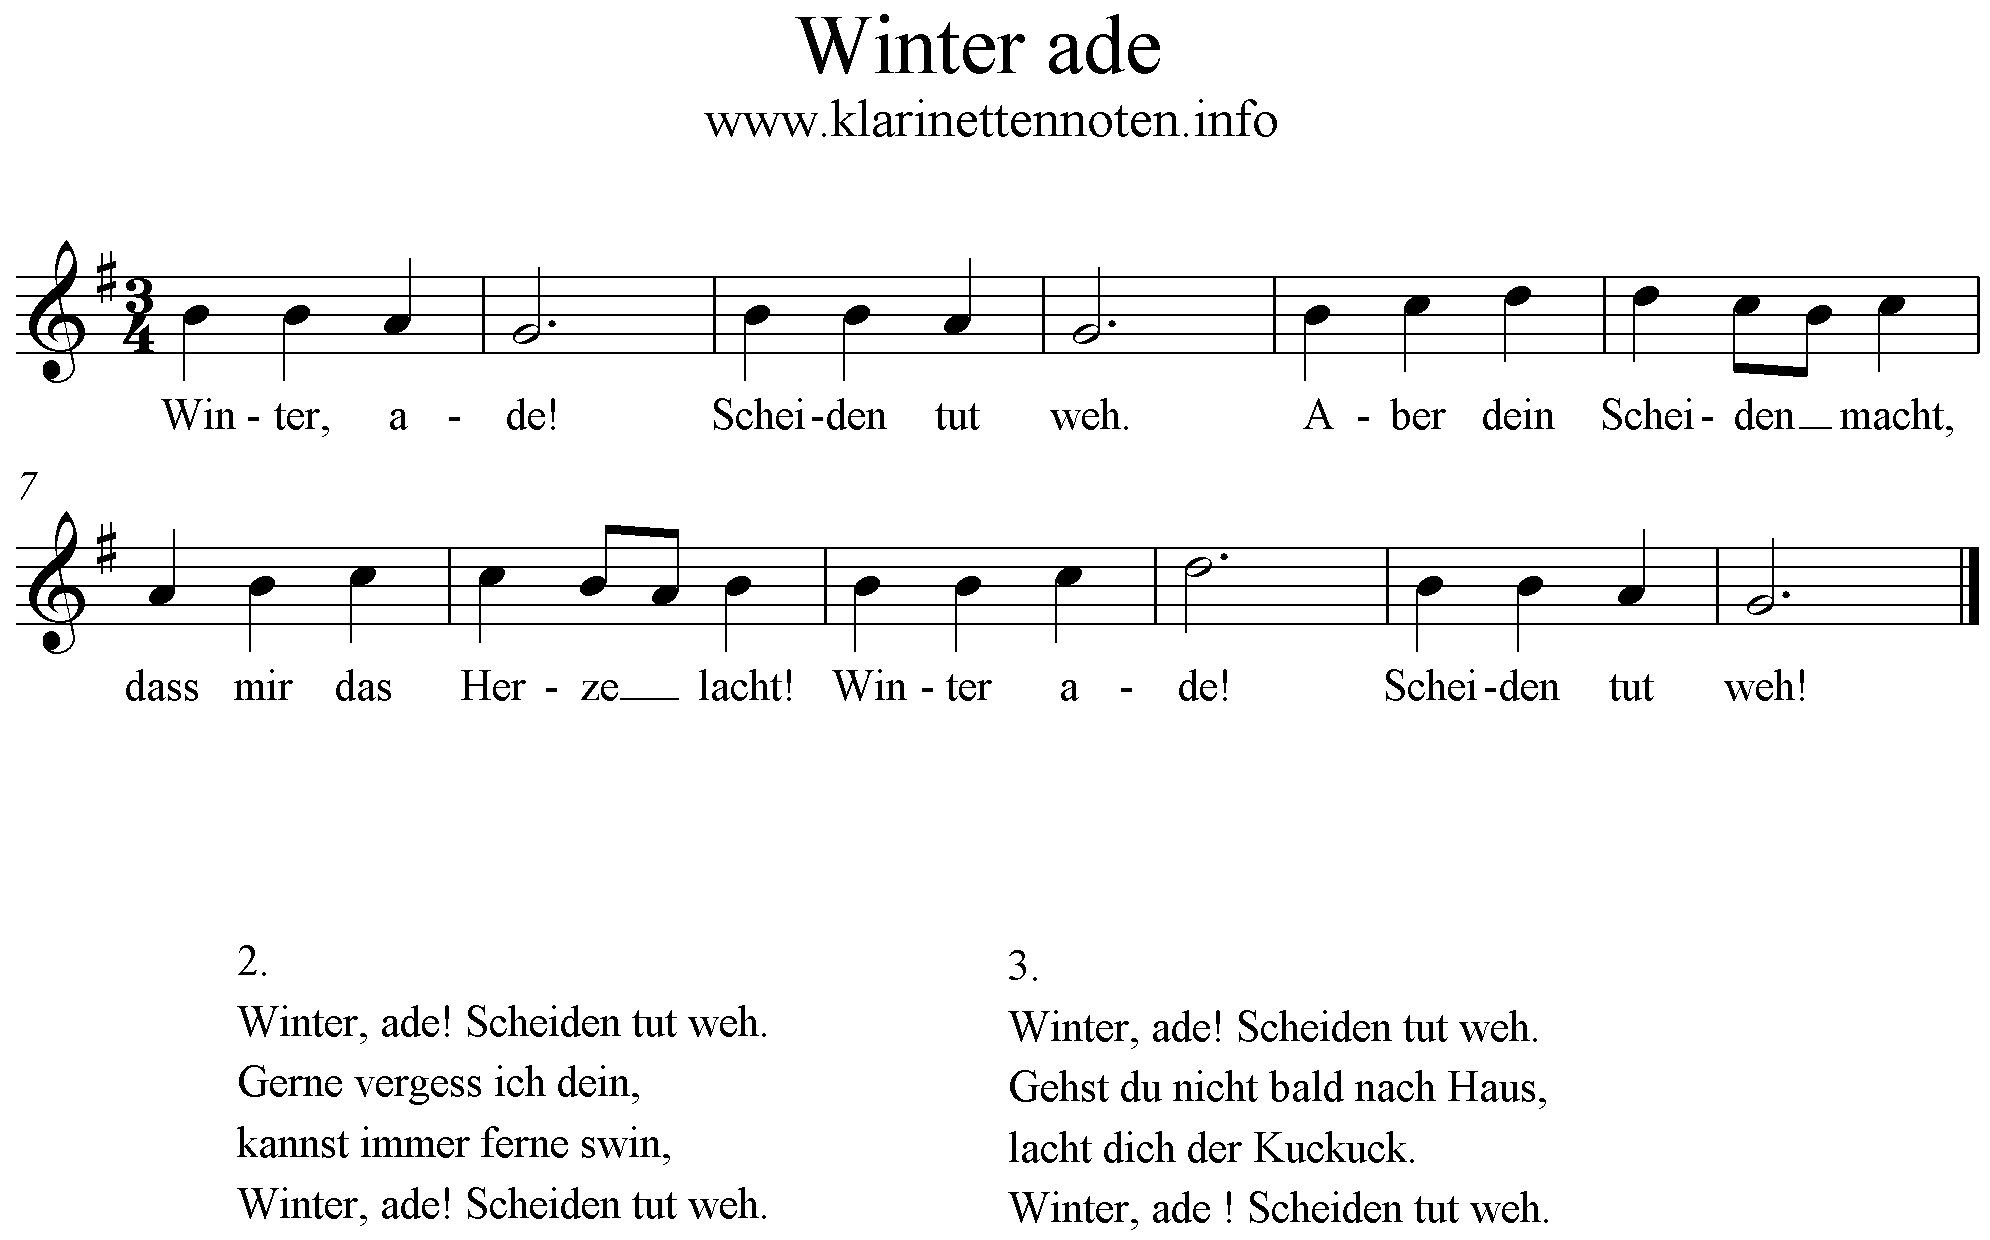 Noten Winter Ade, G-Dur, G-Major